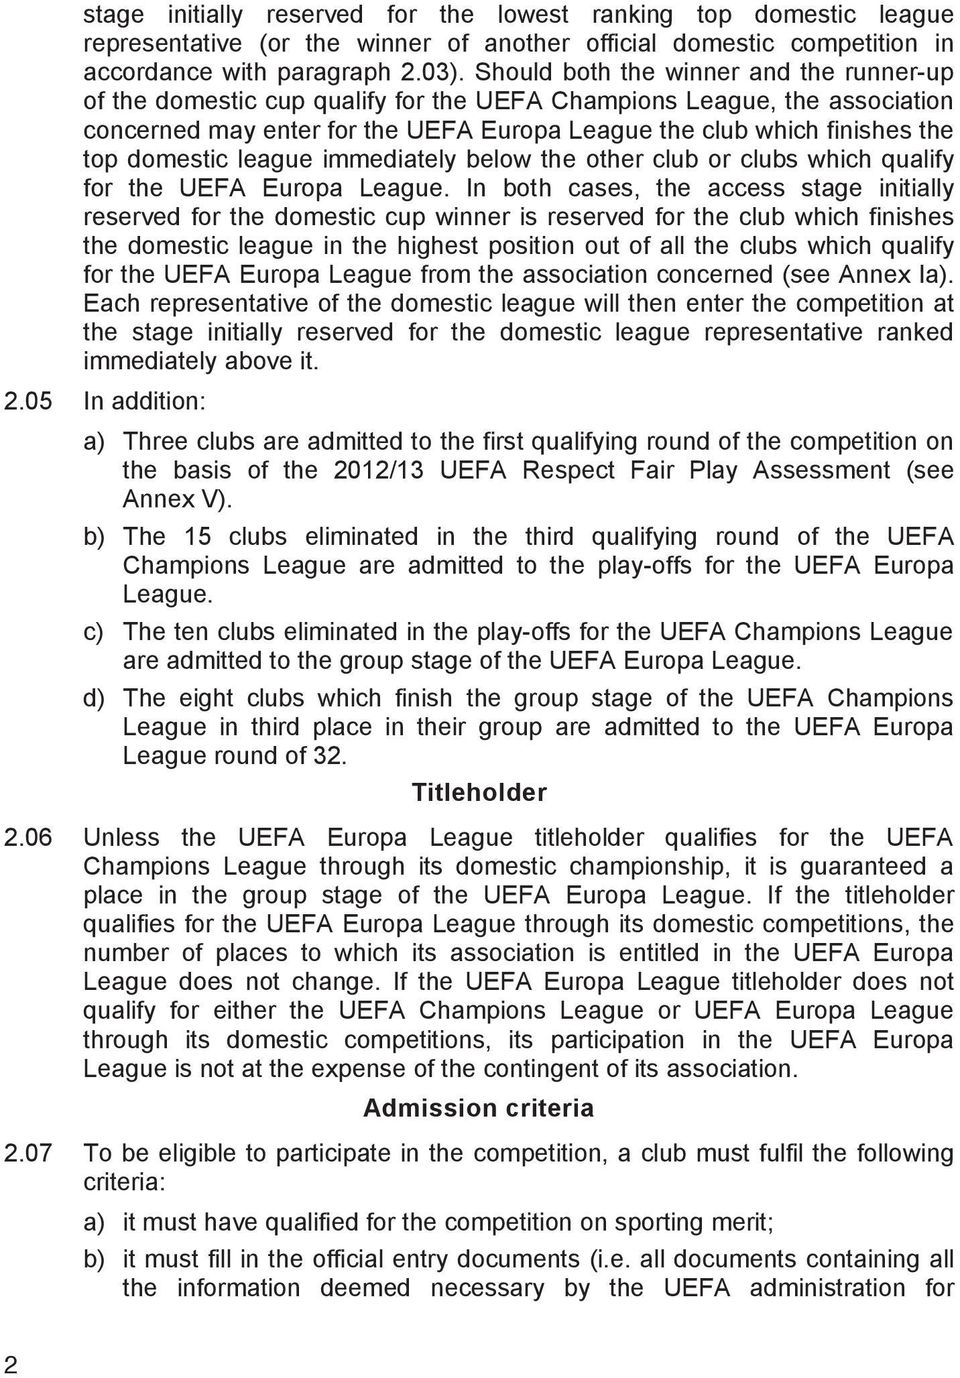 domestic league immediately below the other club or clubs which qualify for the UEFA Europa League.